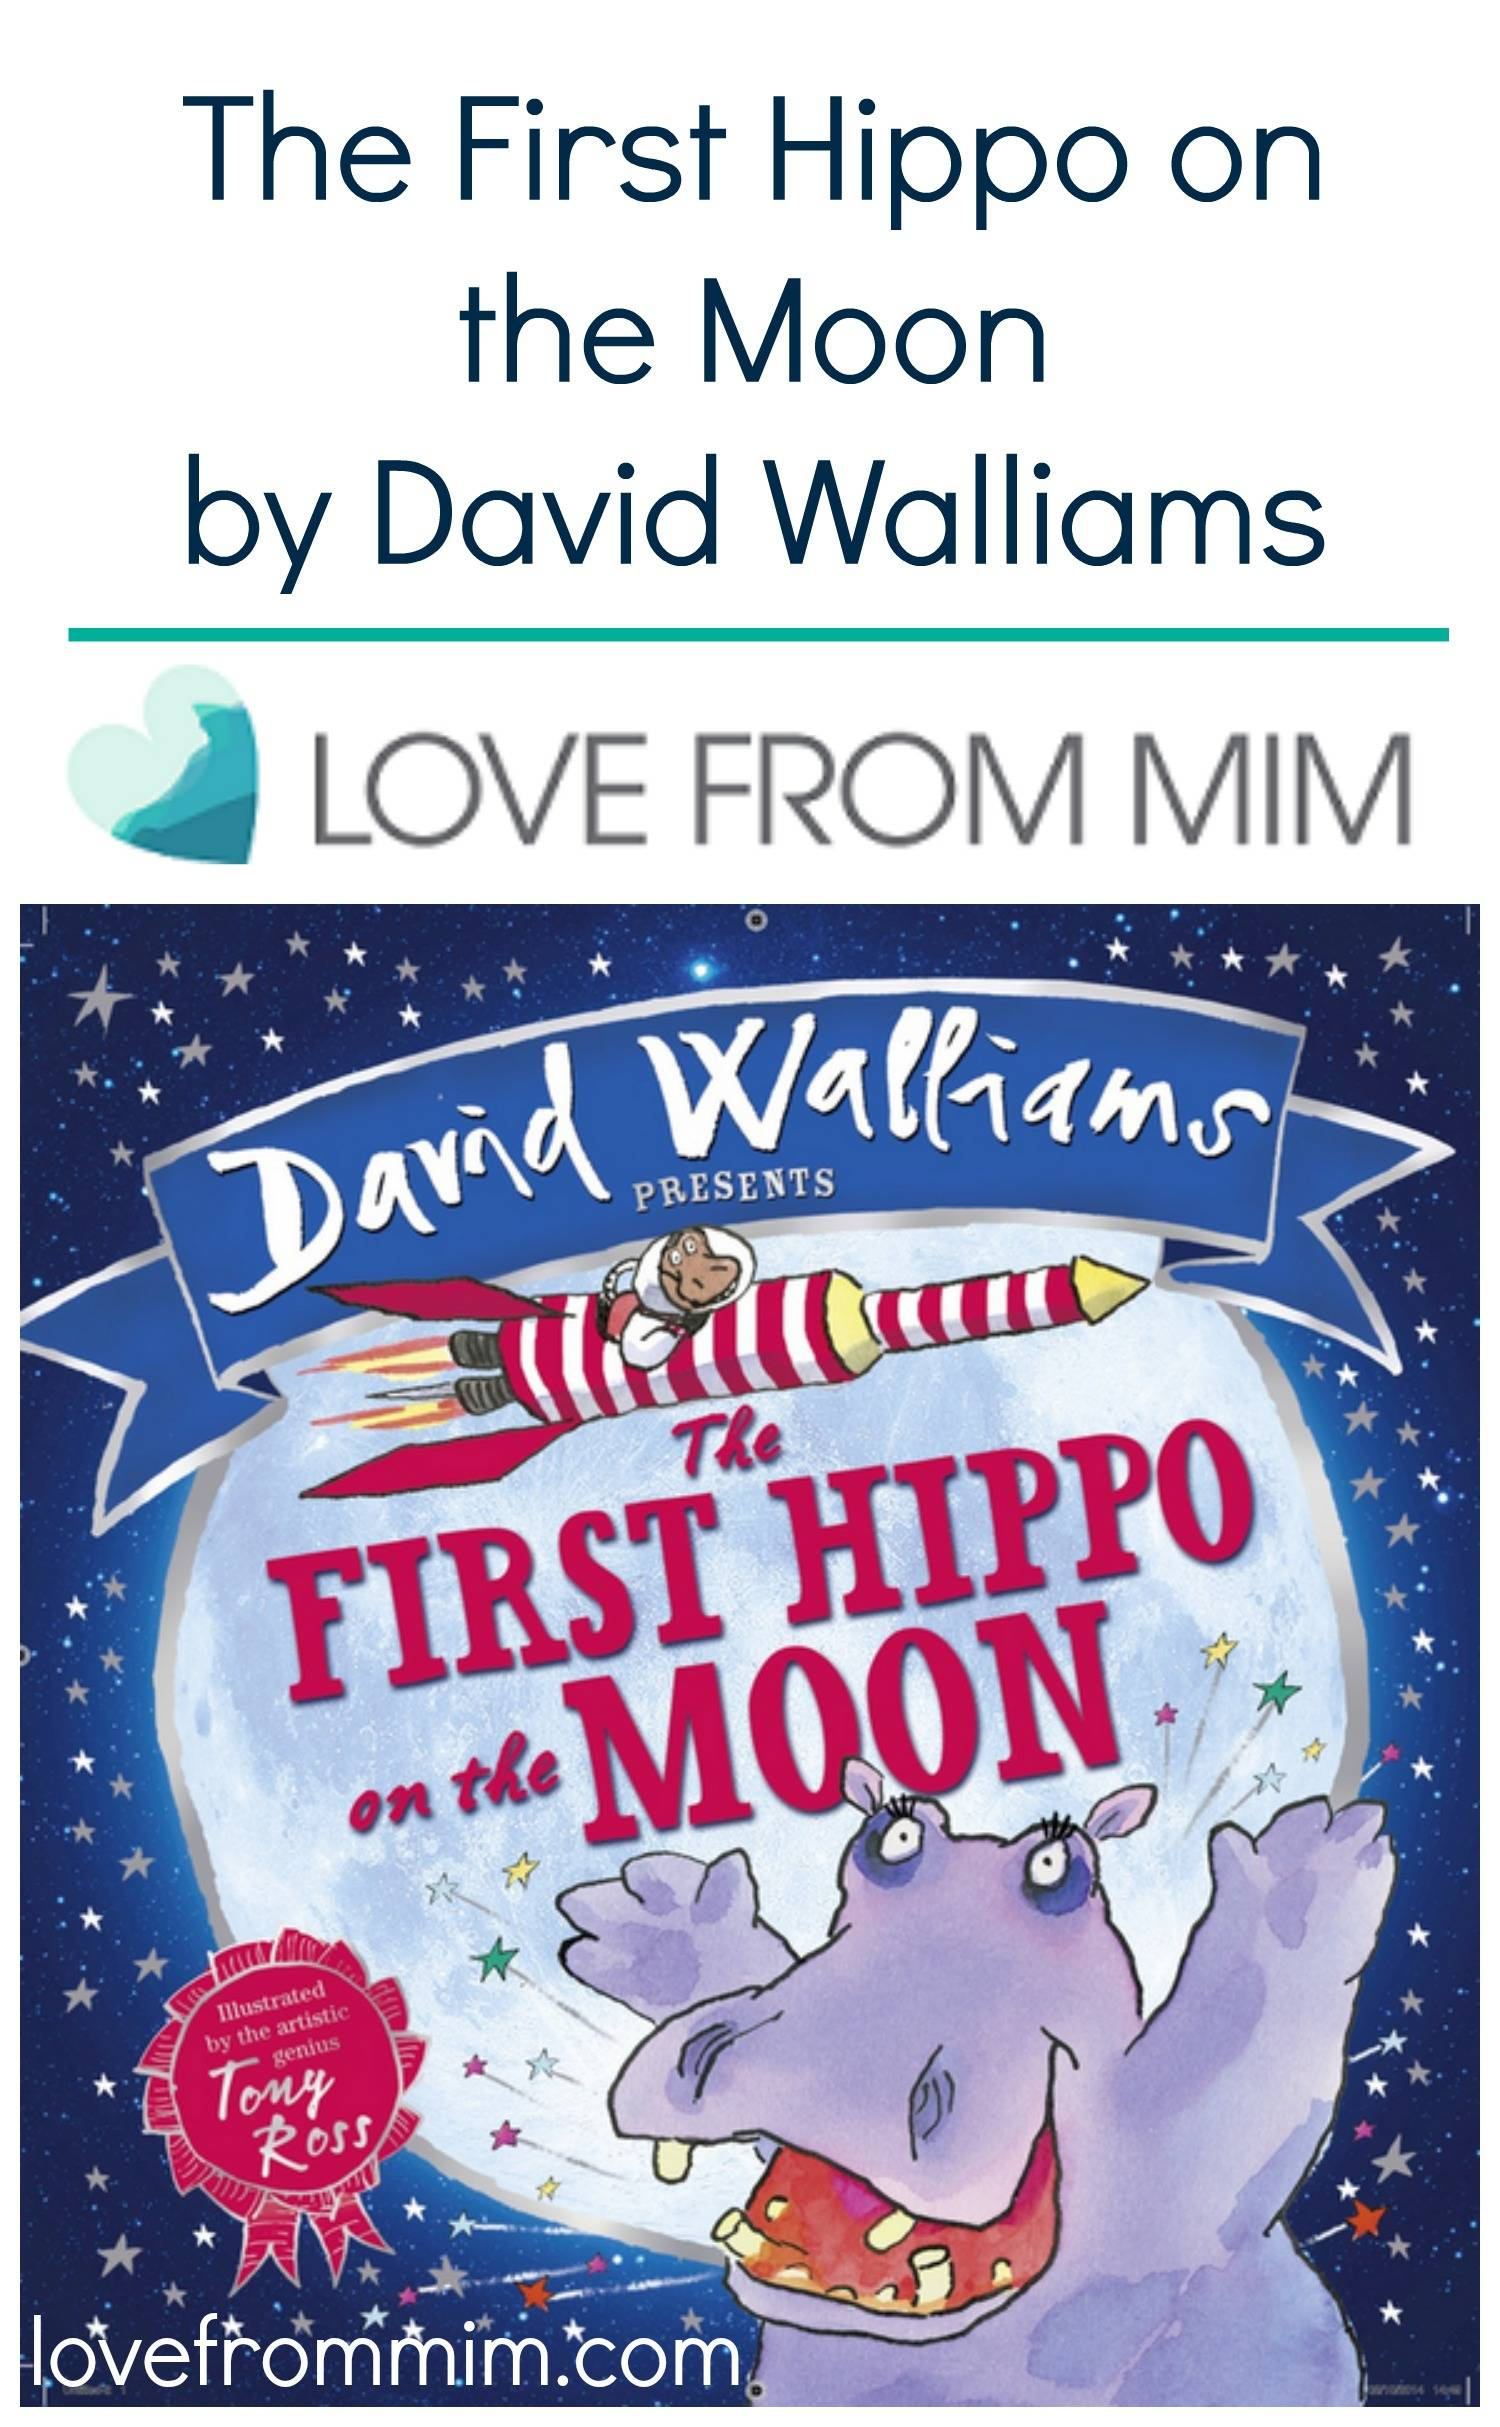 The First Hippo on the Moon by David Walliams - lovefrommim.com Childrens Book Review